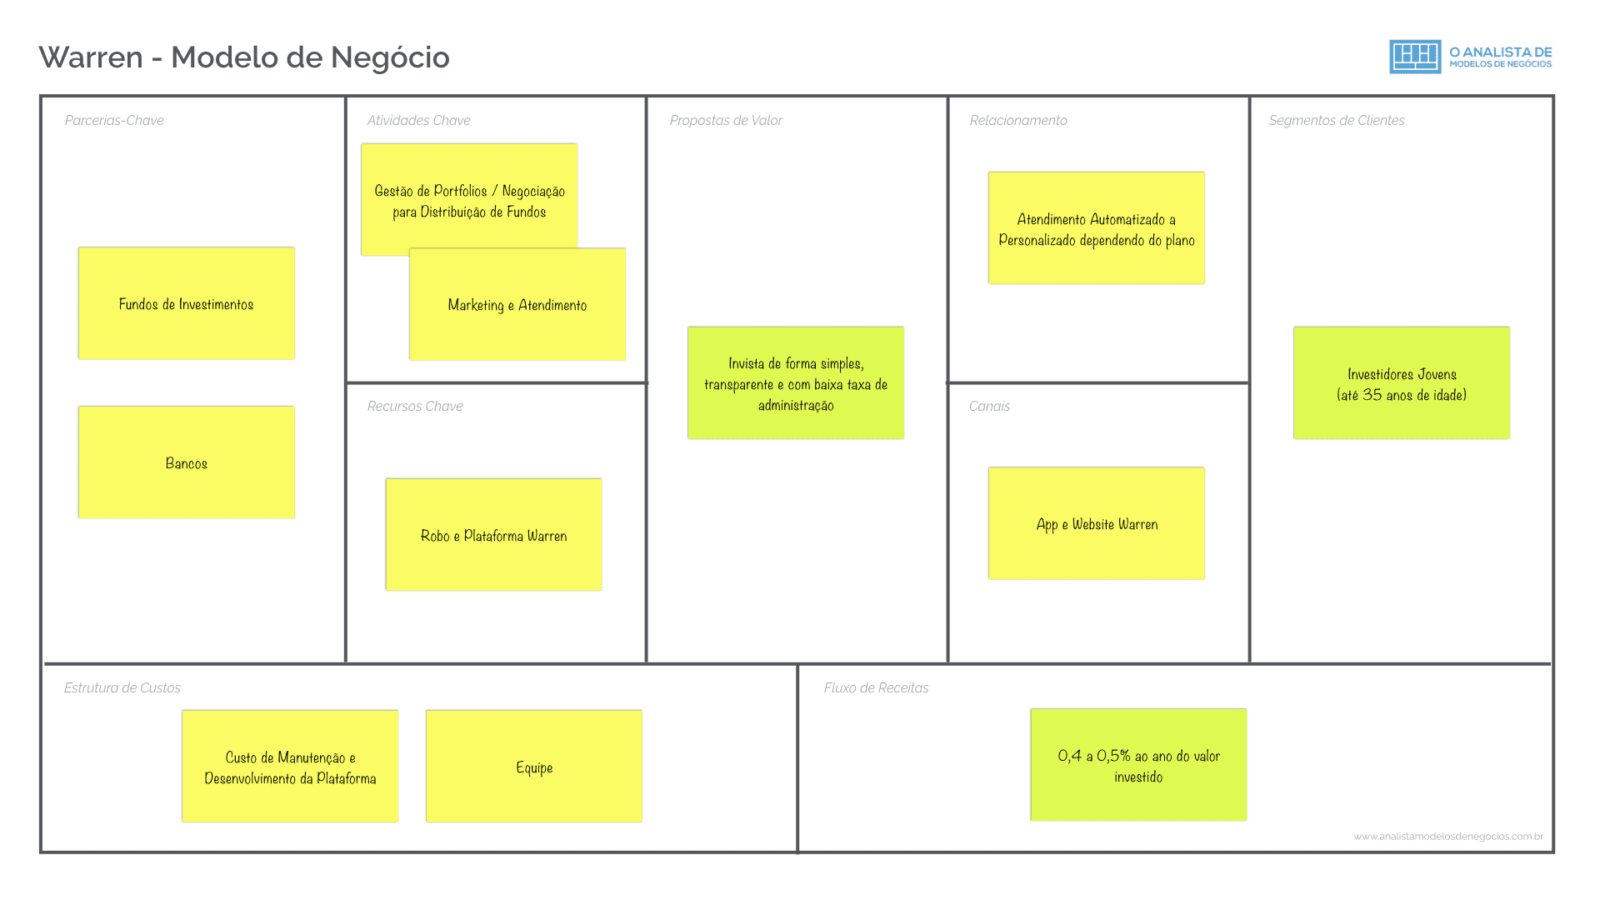 Modelo de Negócio da Warren Business Model Canvas